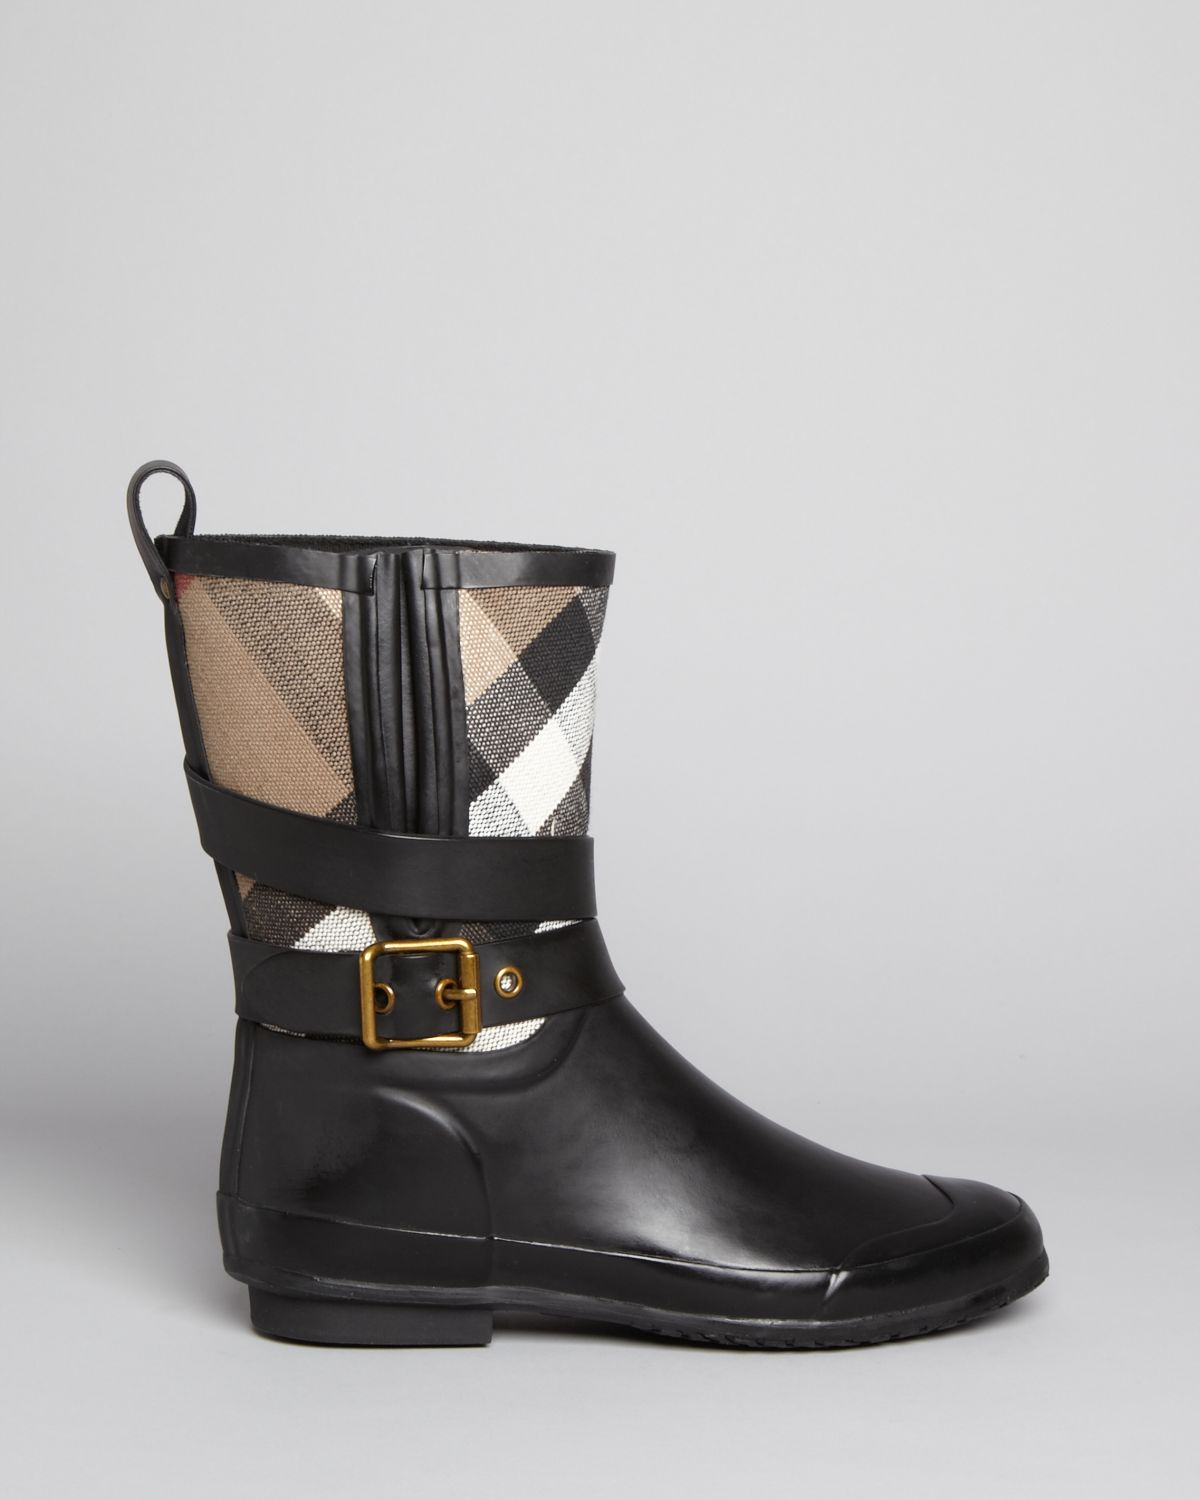 burberry boots holloway mid buckle check in black